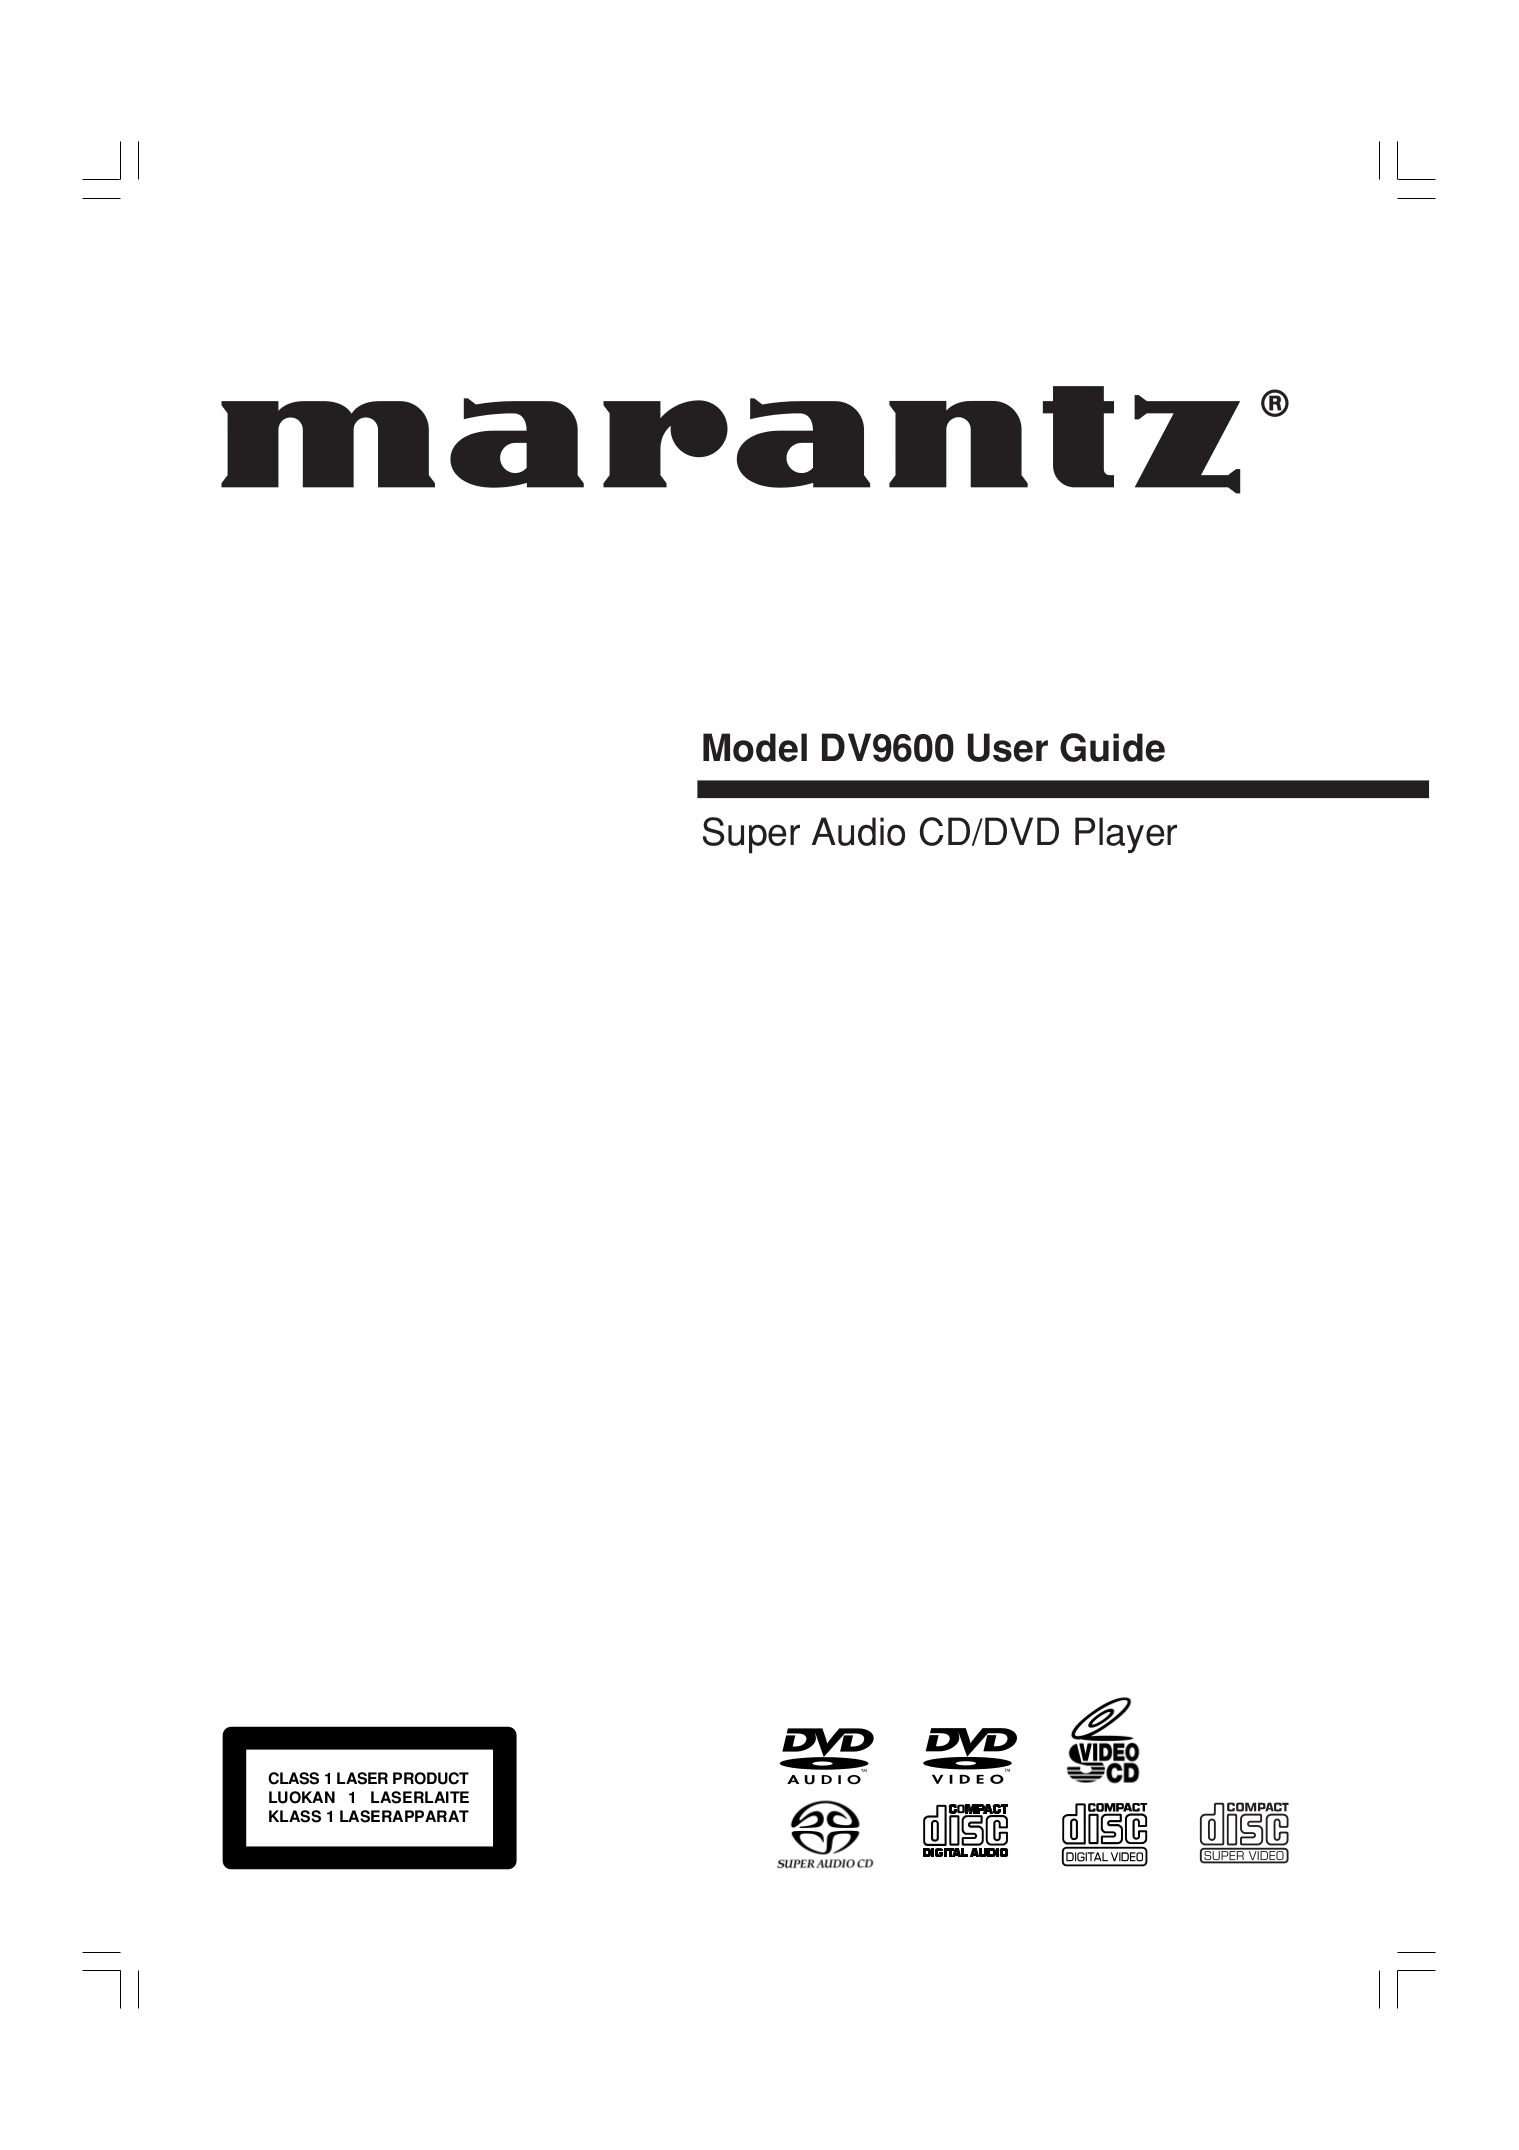 Download free pdf for Marantz DV9600 DVD Players manual